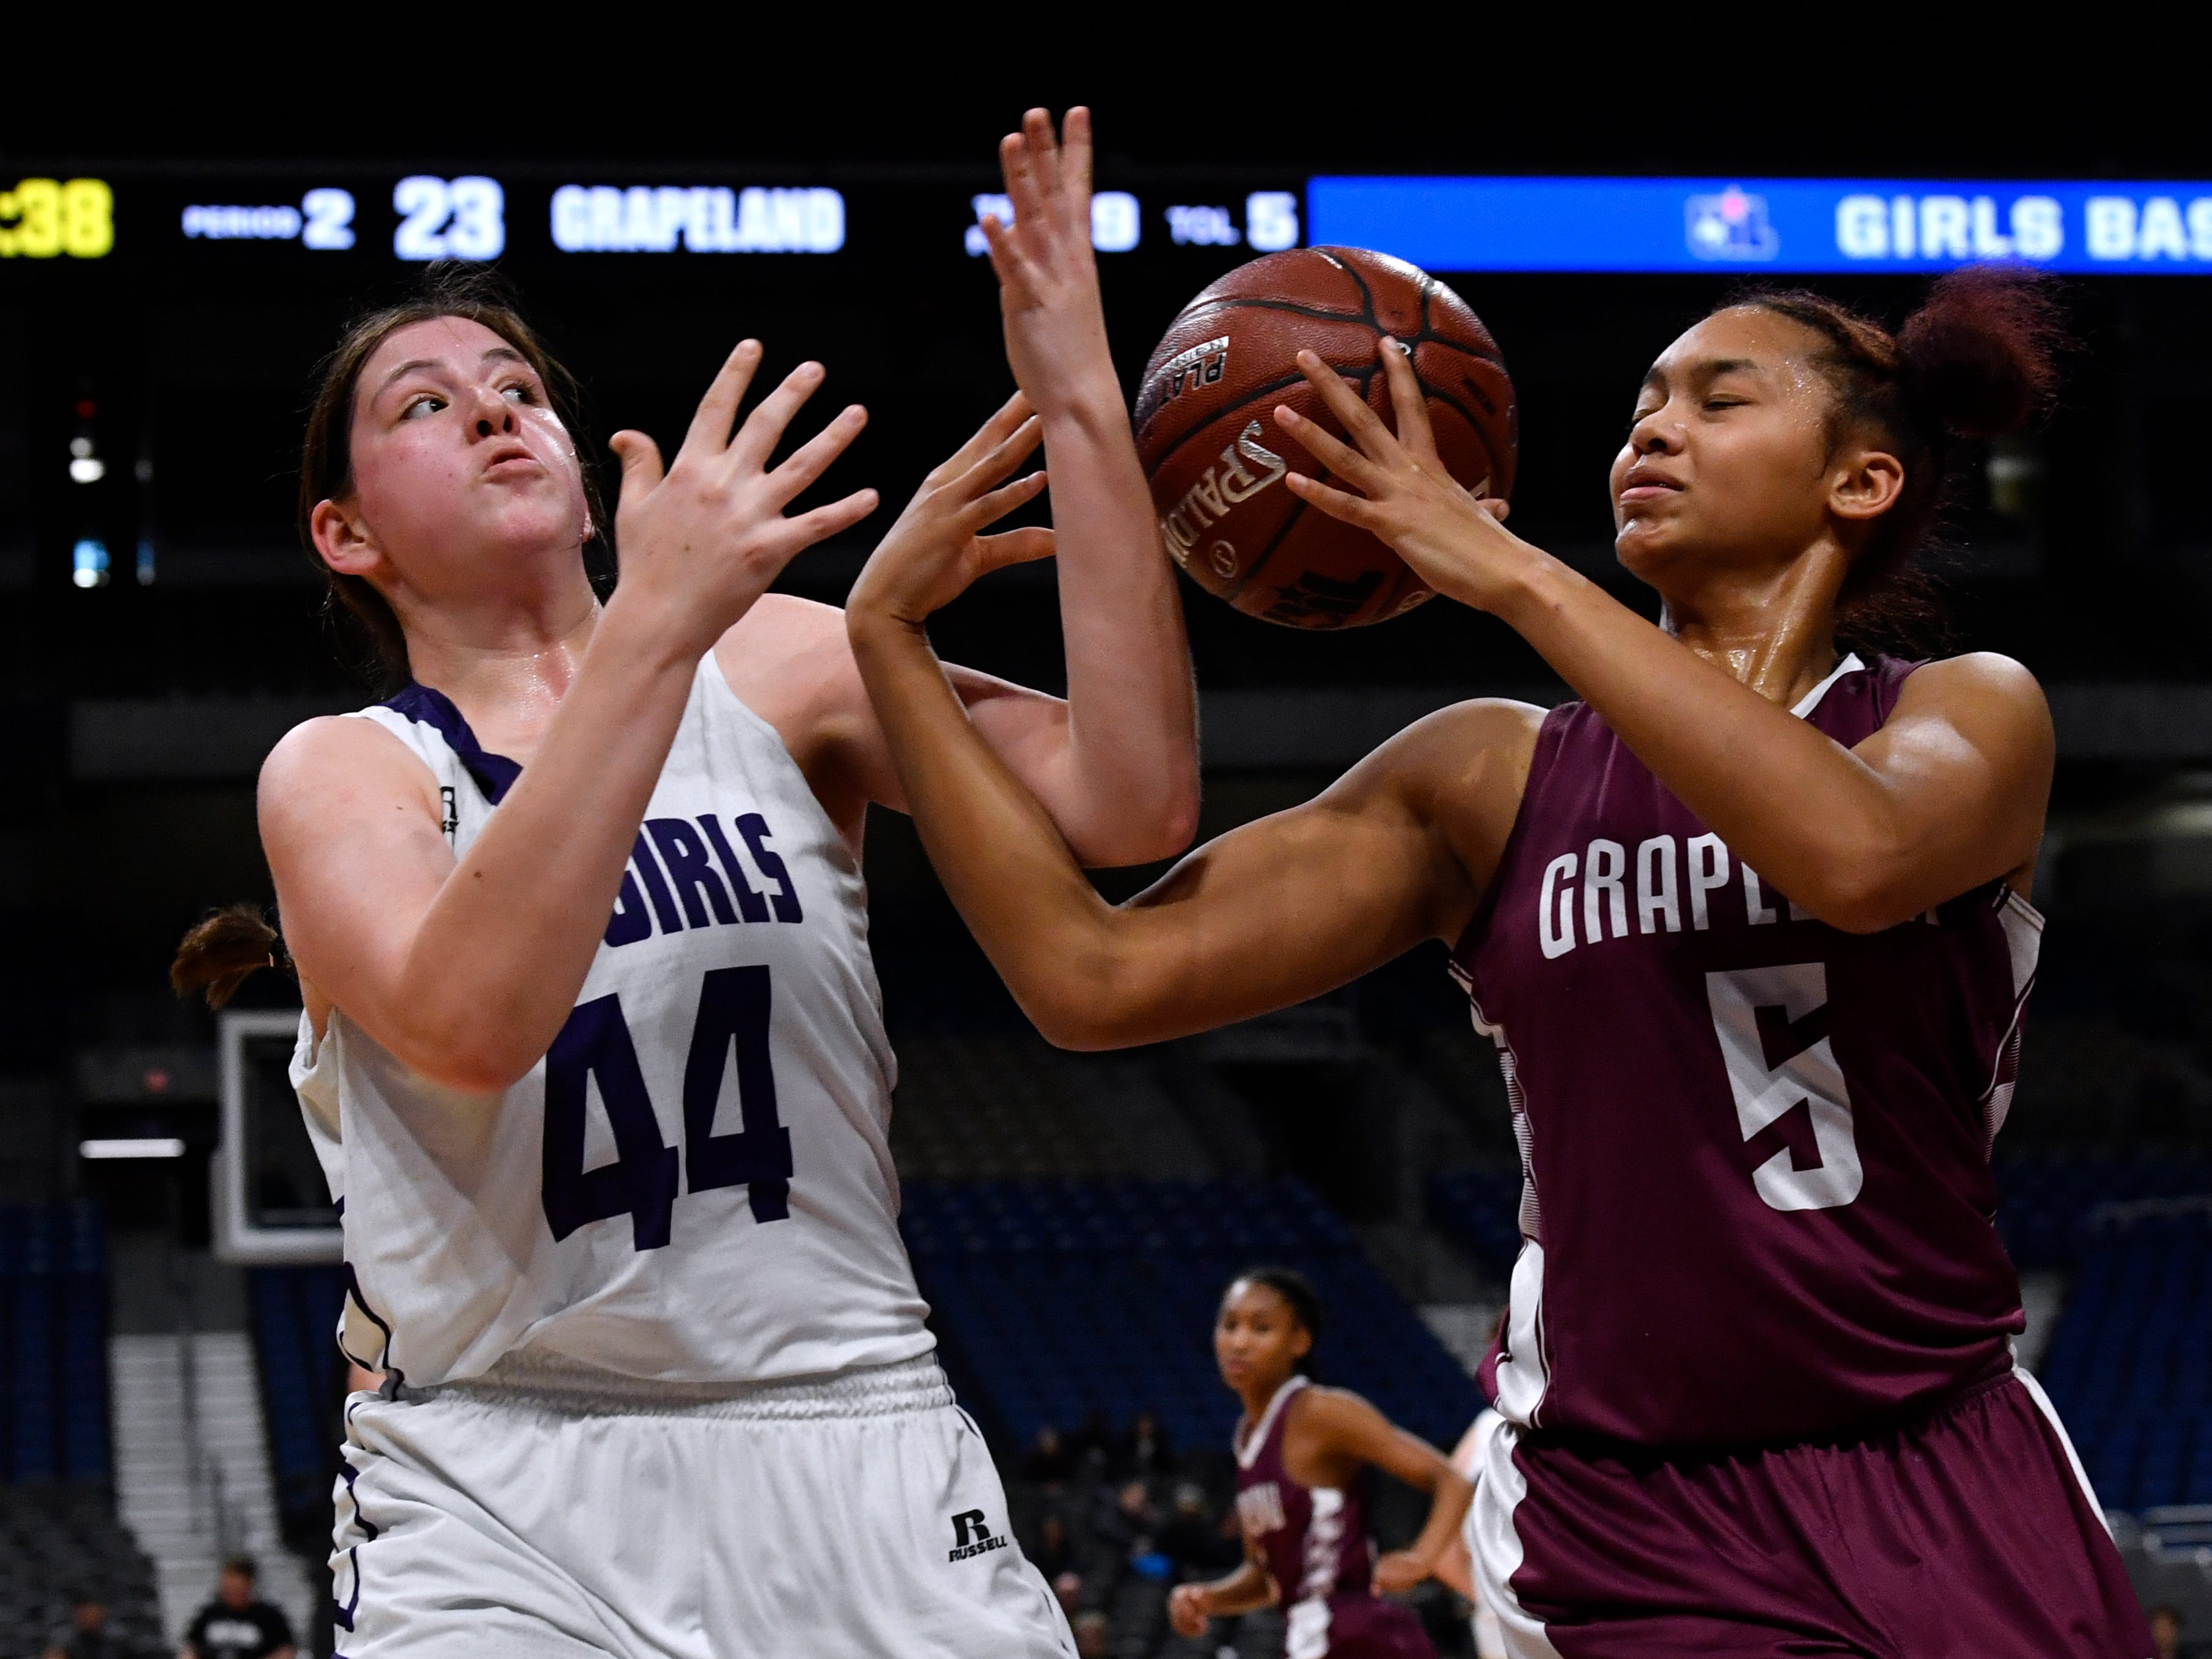 Mason forward McKenzie Cano (left) and Grapeland forward Ragan Bowie fumble for the ball after it bounced from the rim during Friday's UIL Class 2A girls state basketball semifinal at the Alamodome in San Antonio March 1, 2019.